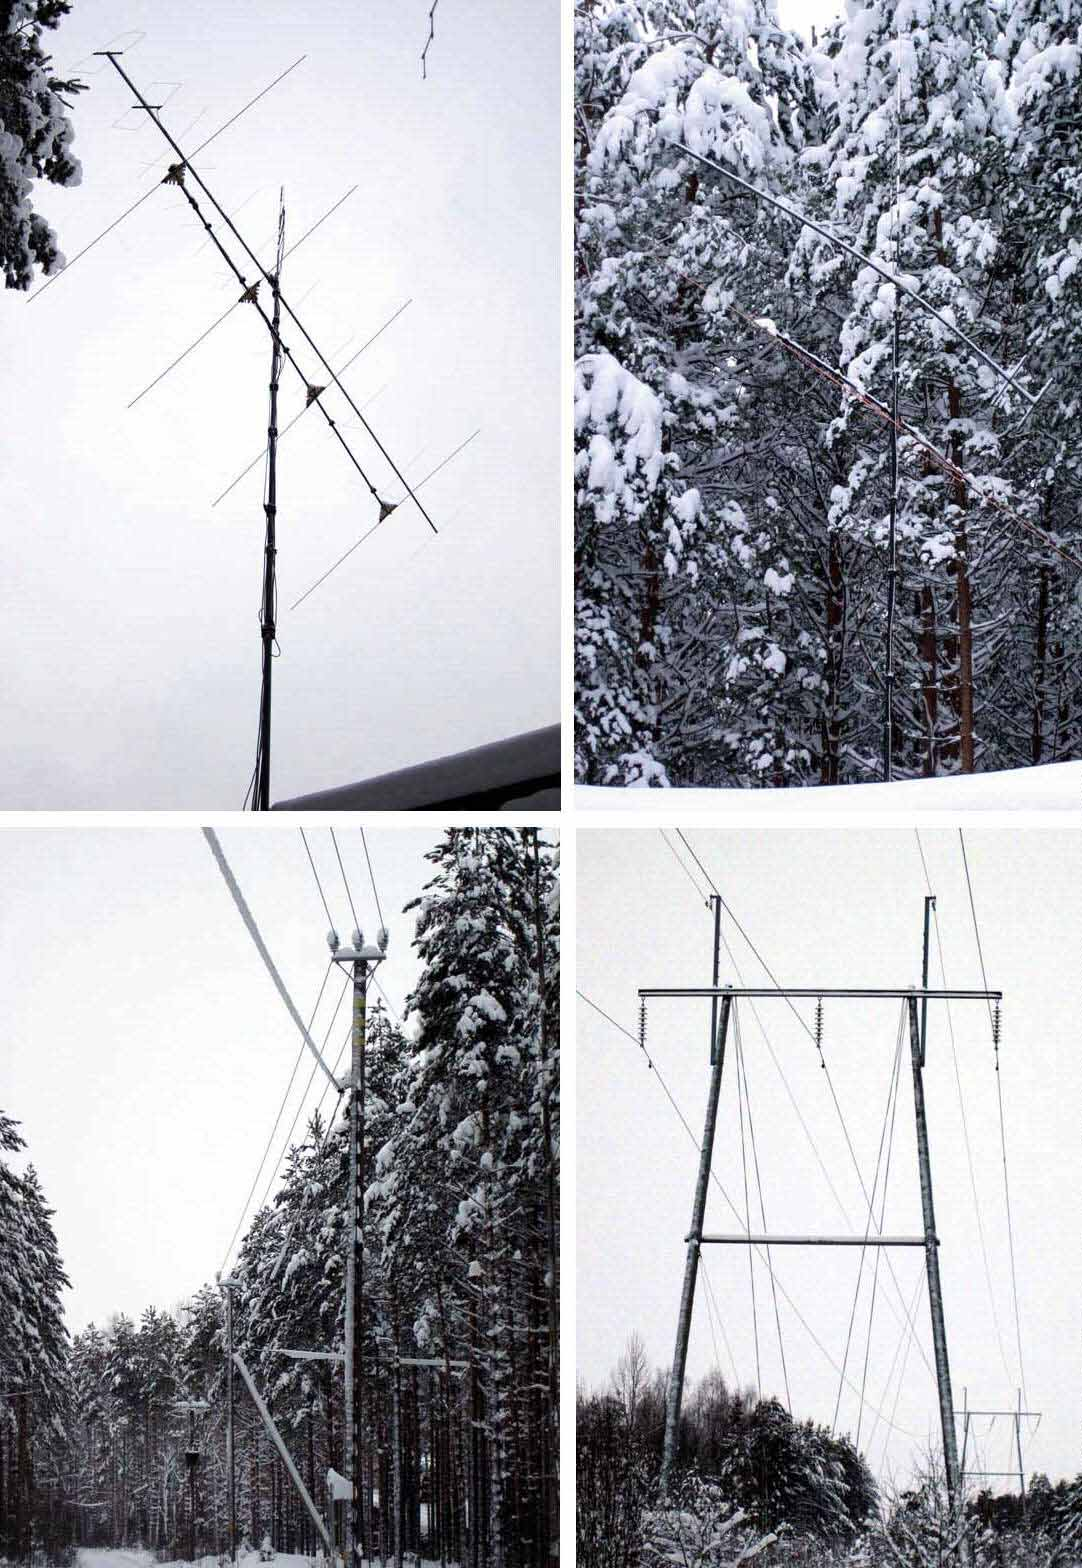 2012-01-23 OH7HJ aerials and obstacles - Low kV lines to west and high kV lines to south and hilly terrain to east.jpg